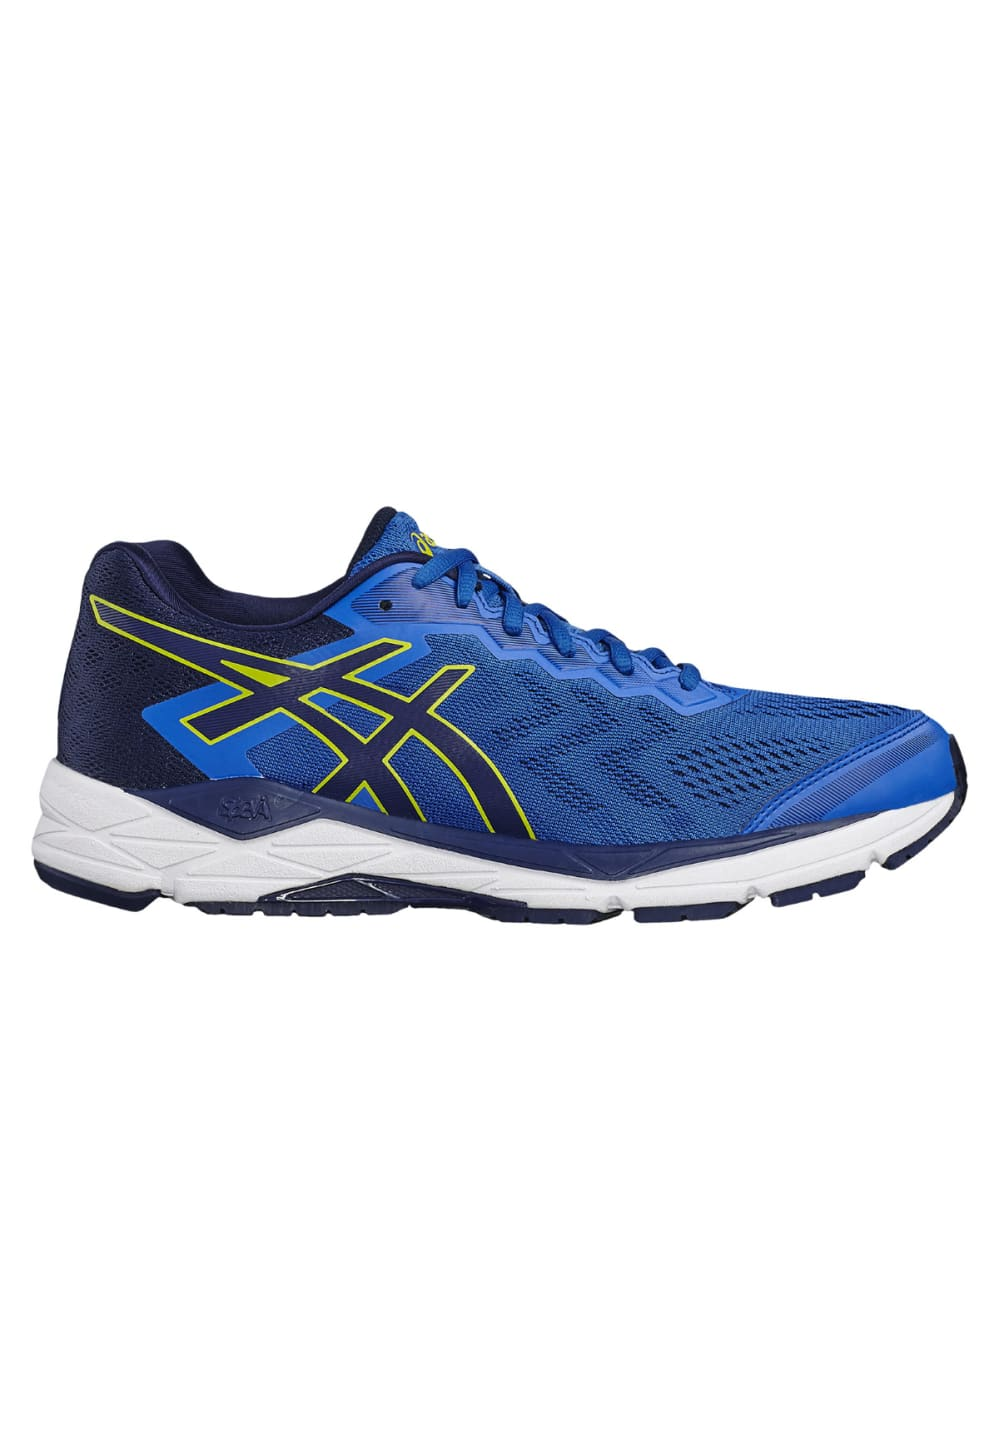 8e34b40b ASICS GEL-Fortitude 8 (2E) - Running shoes for Men - Blue